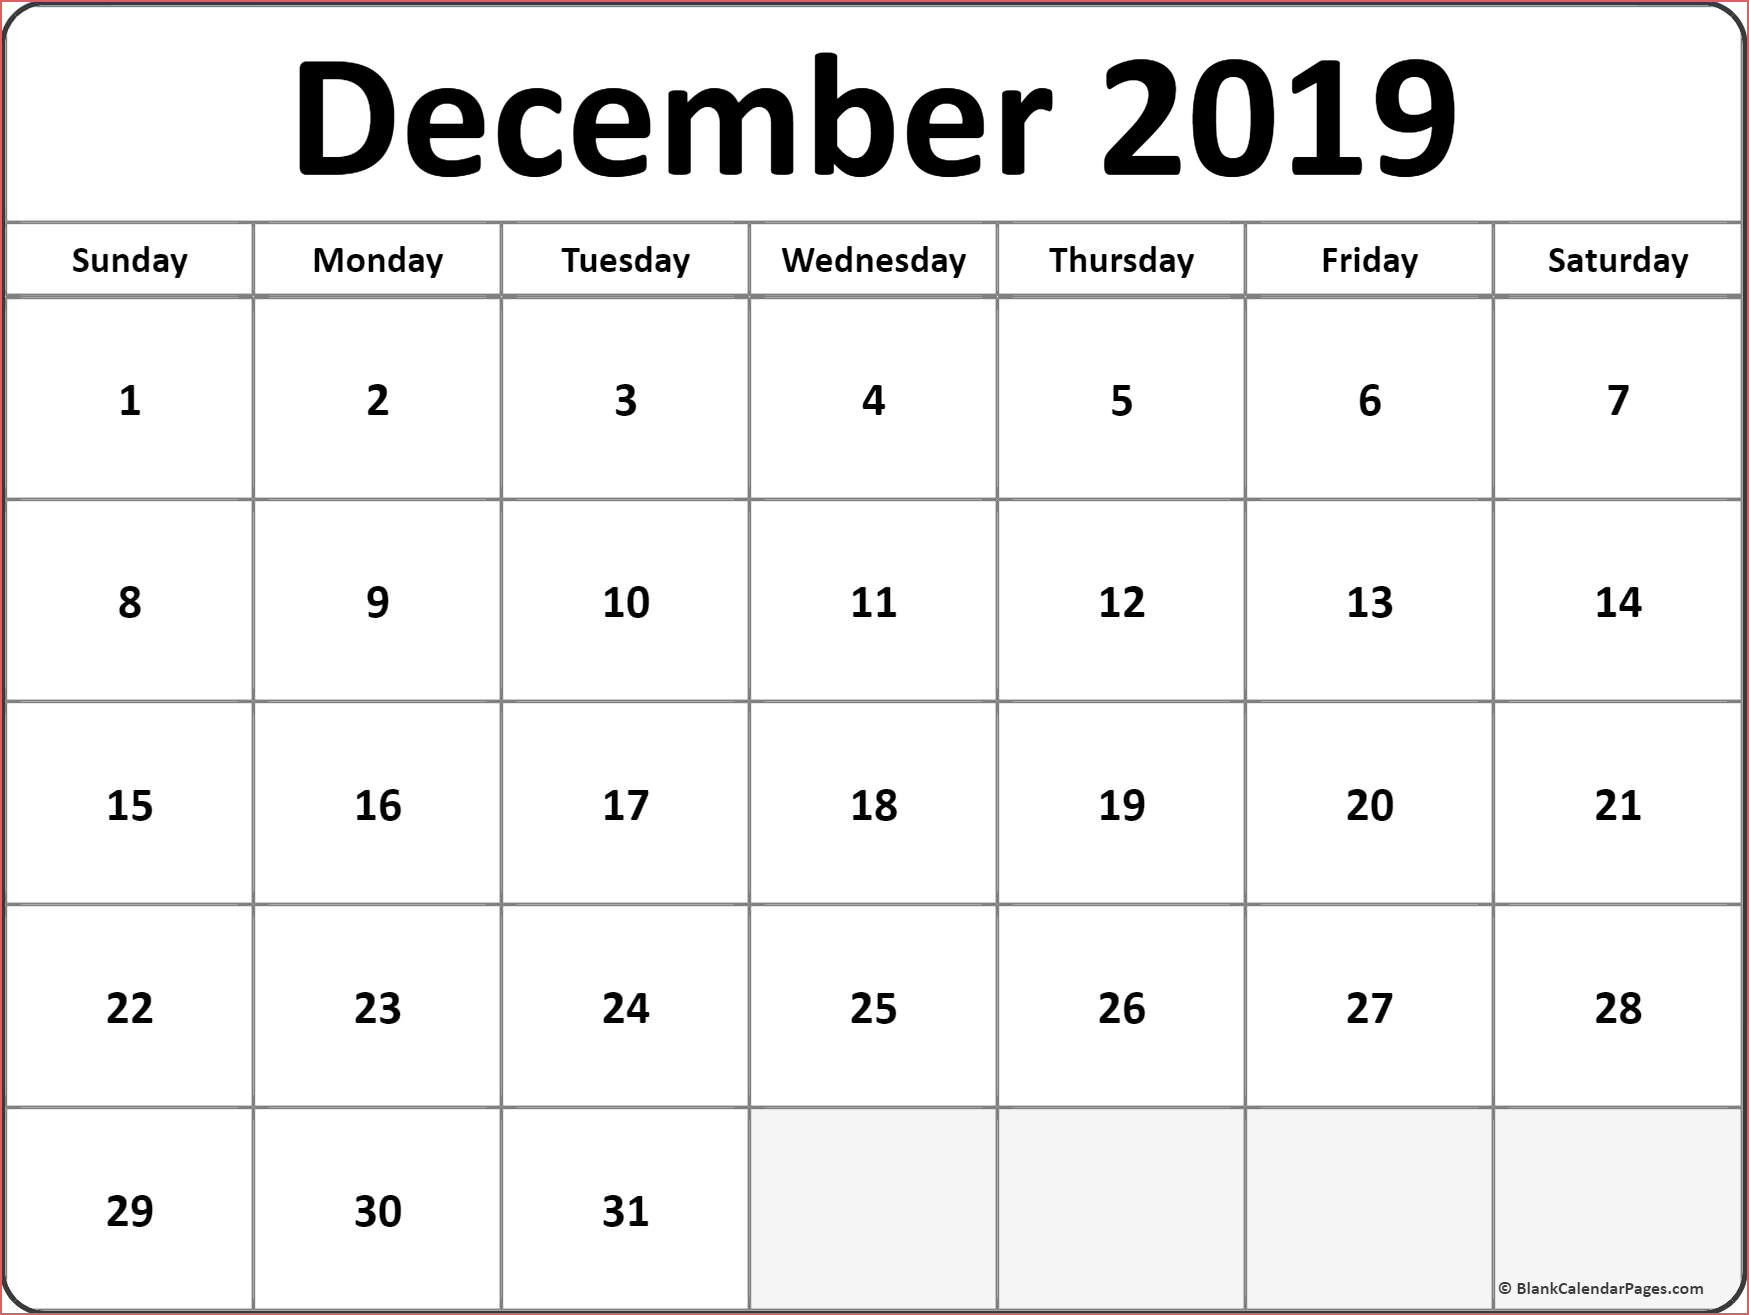 December 2019 Calendar Free Printable Monthly Calendars December pertaining to December Monthly Calendar Template